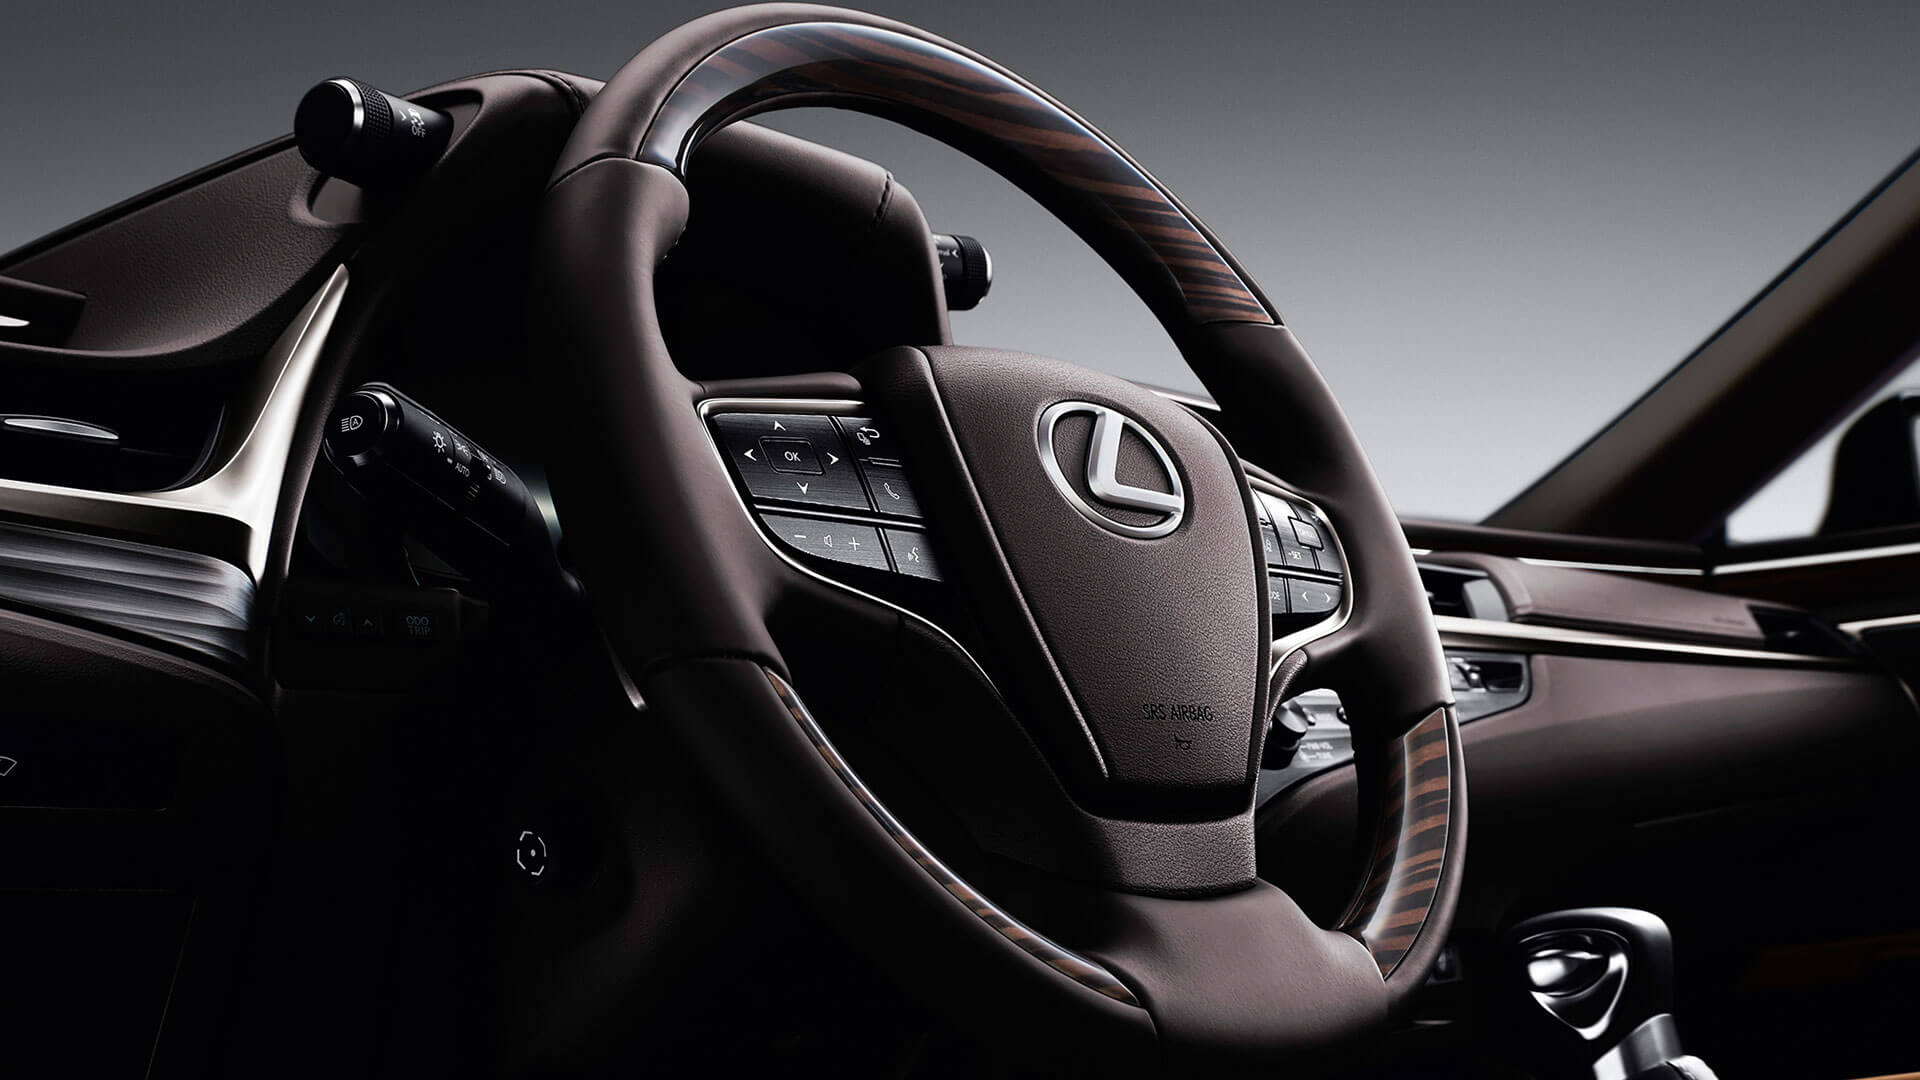 2019 lexus es hybrid experience feature leather steering wheel